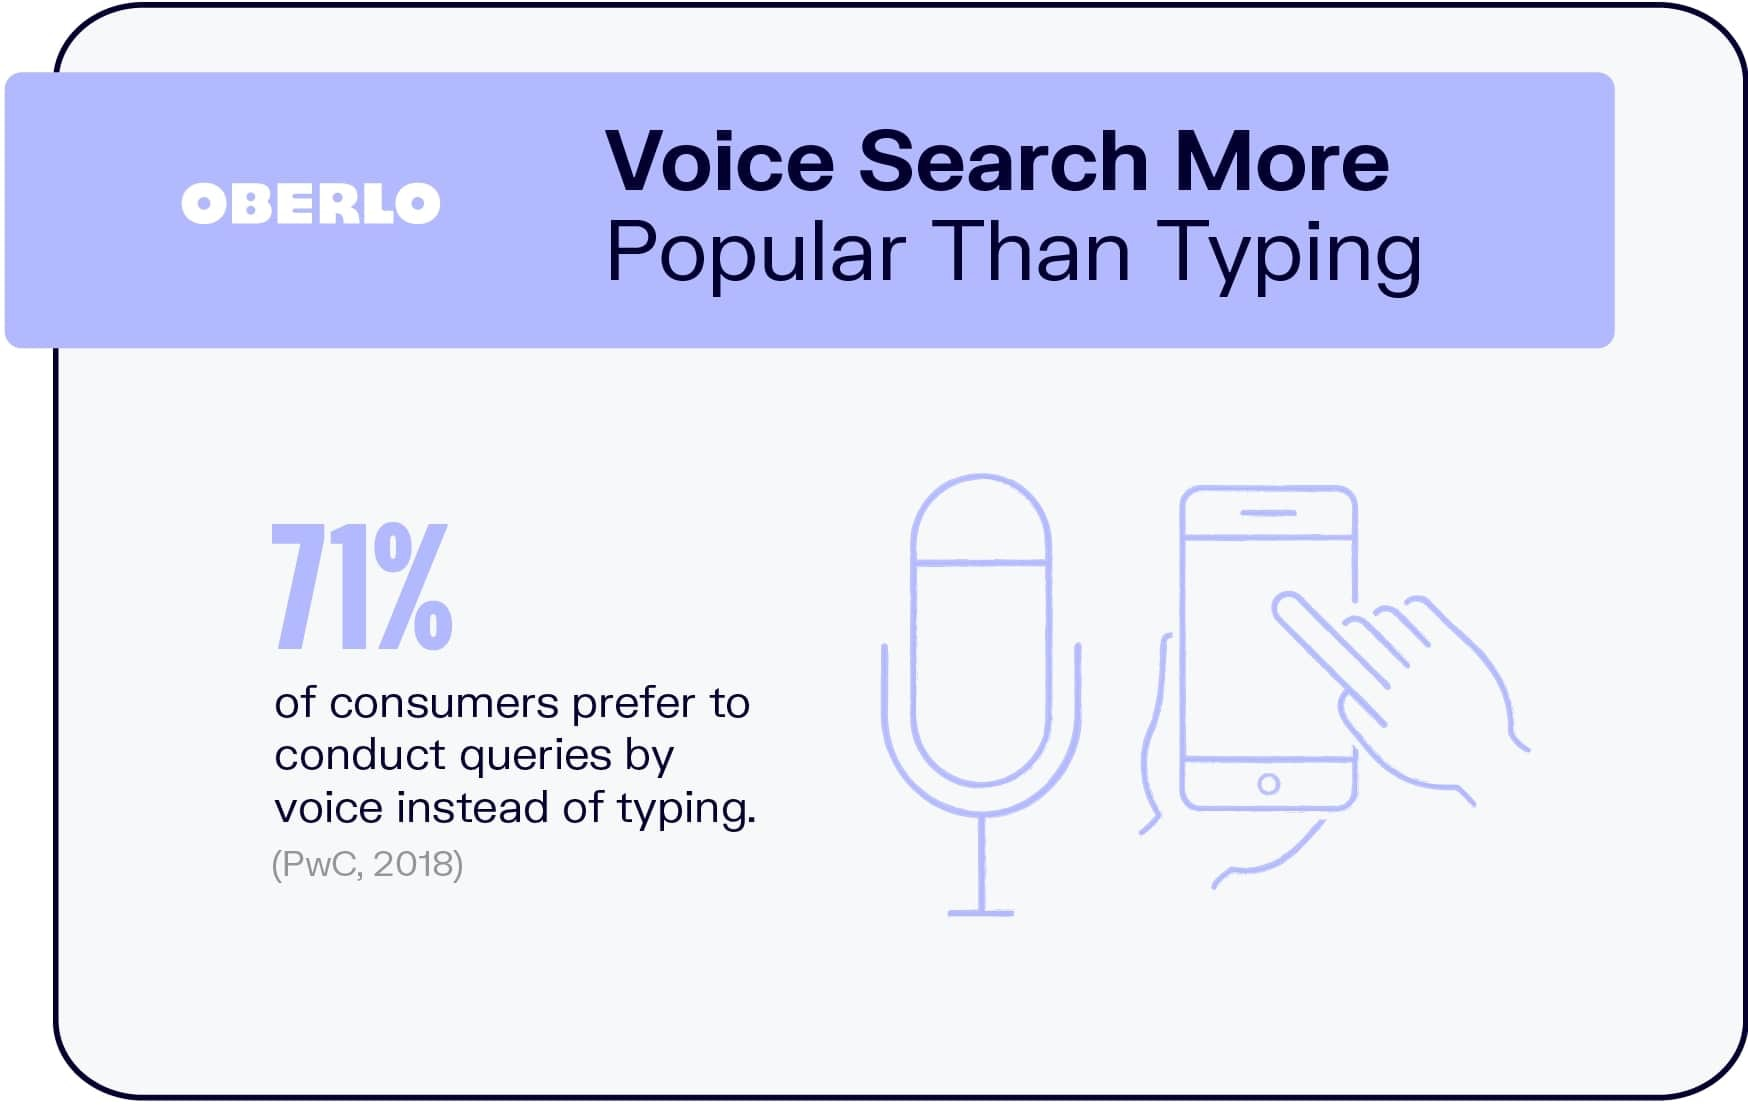 Voice Search More Popular Than Typing